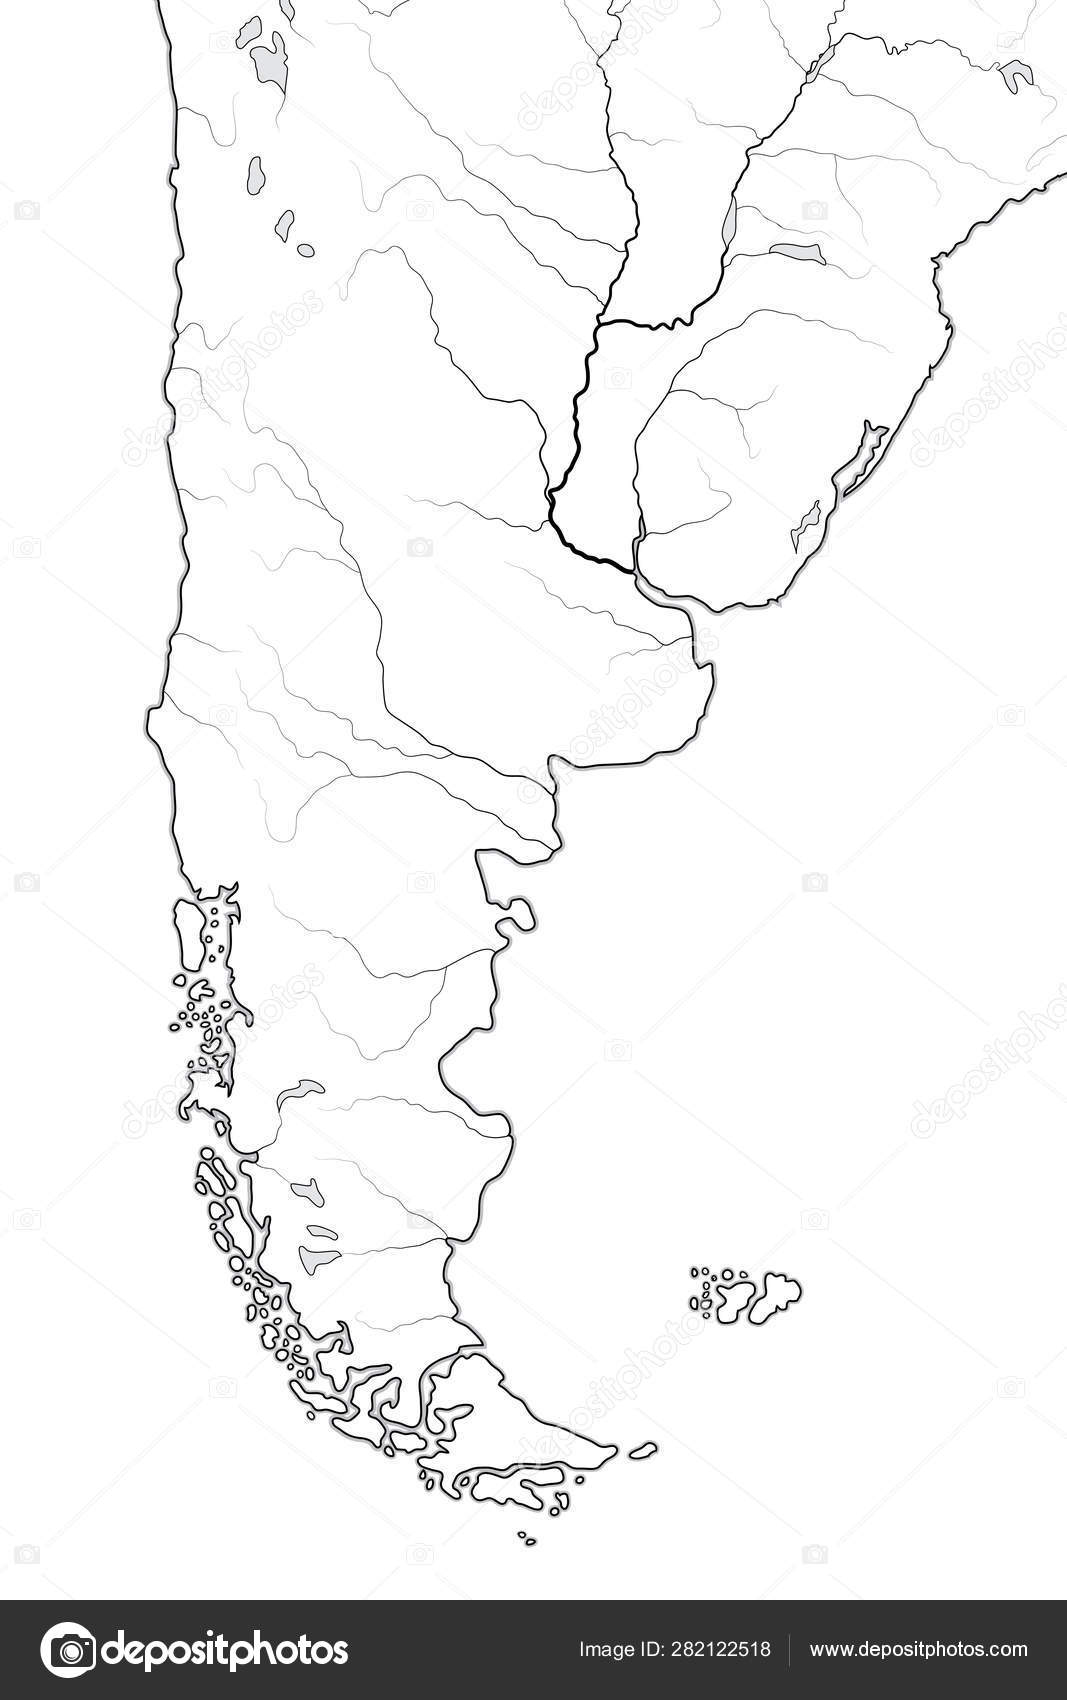 World Map of PATAGONIA in SOUTH AMERICA: Argentina, Chile ...